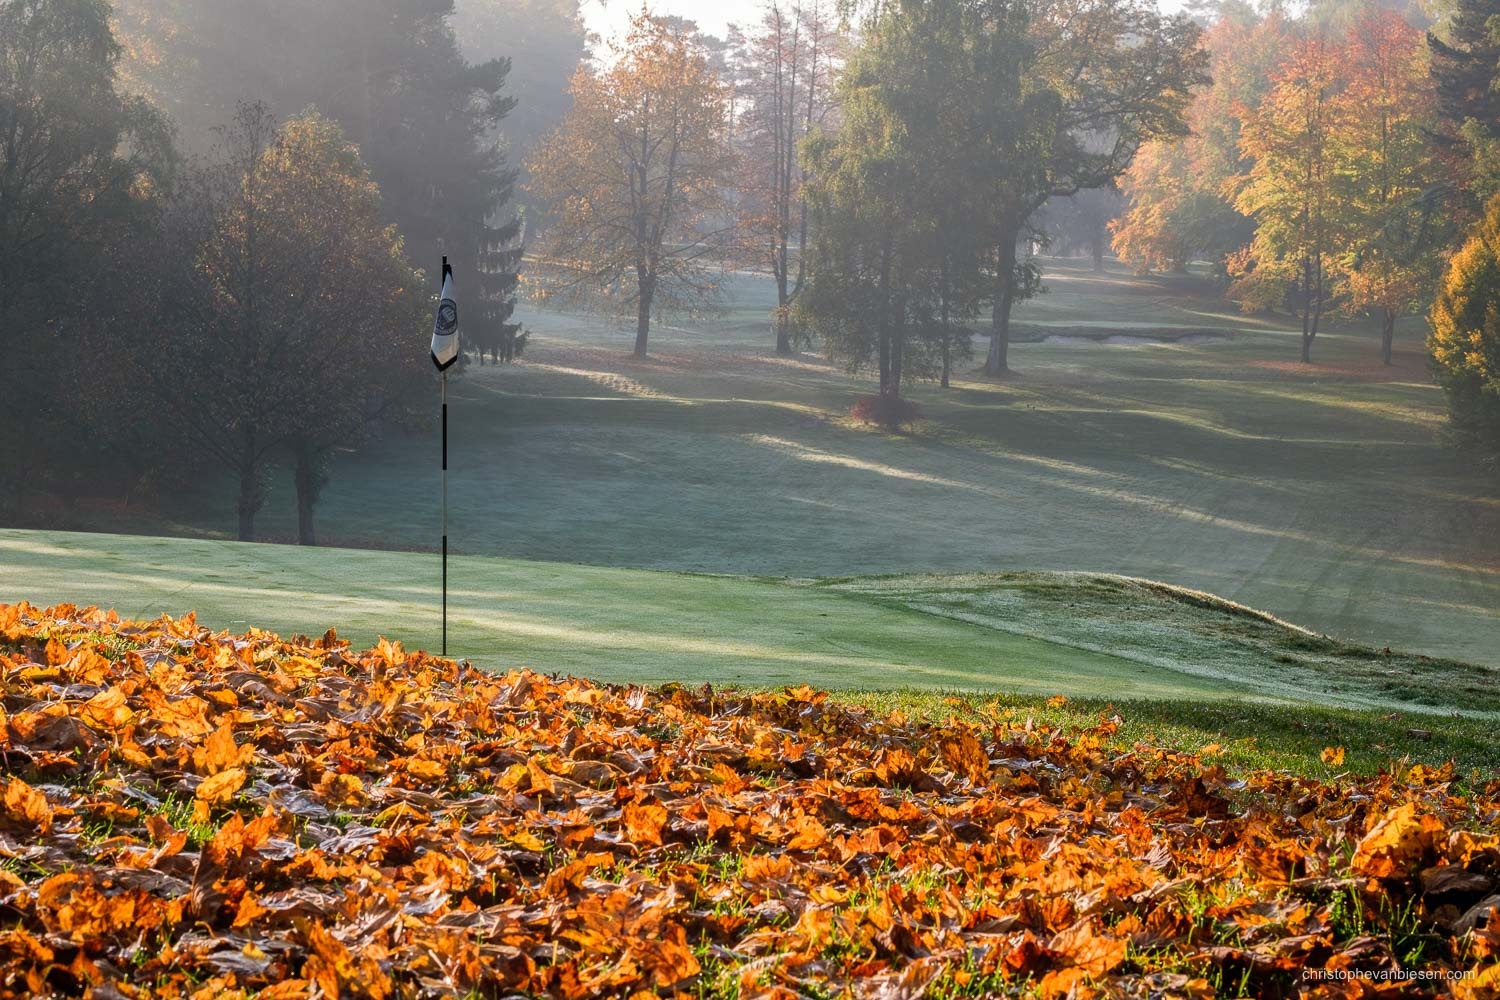 Work with me - Commission Work - Golf Club Grand Ducal Luxembourg Senningerberg - Hole 4 - Photography by Christophe Van Biesen - Luxembourg Landscape and Travel Photographer